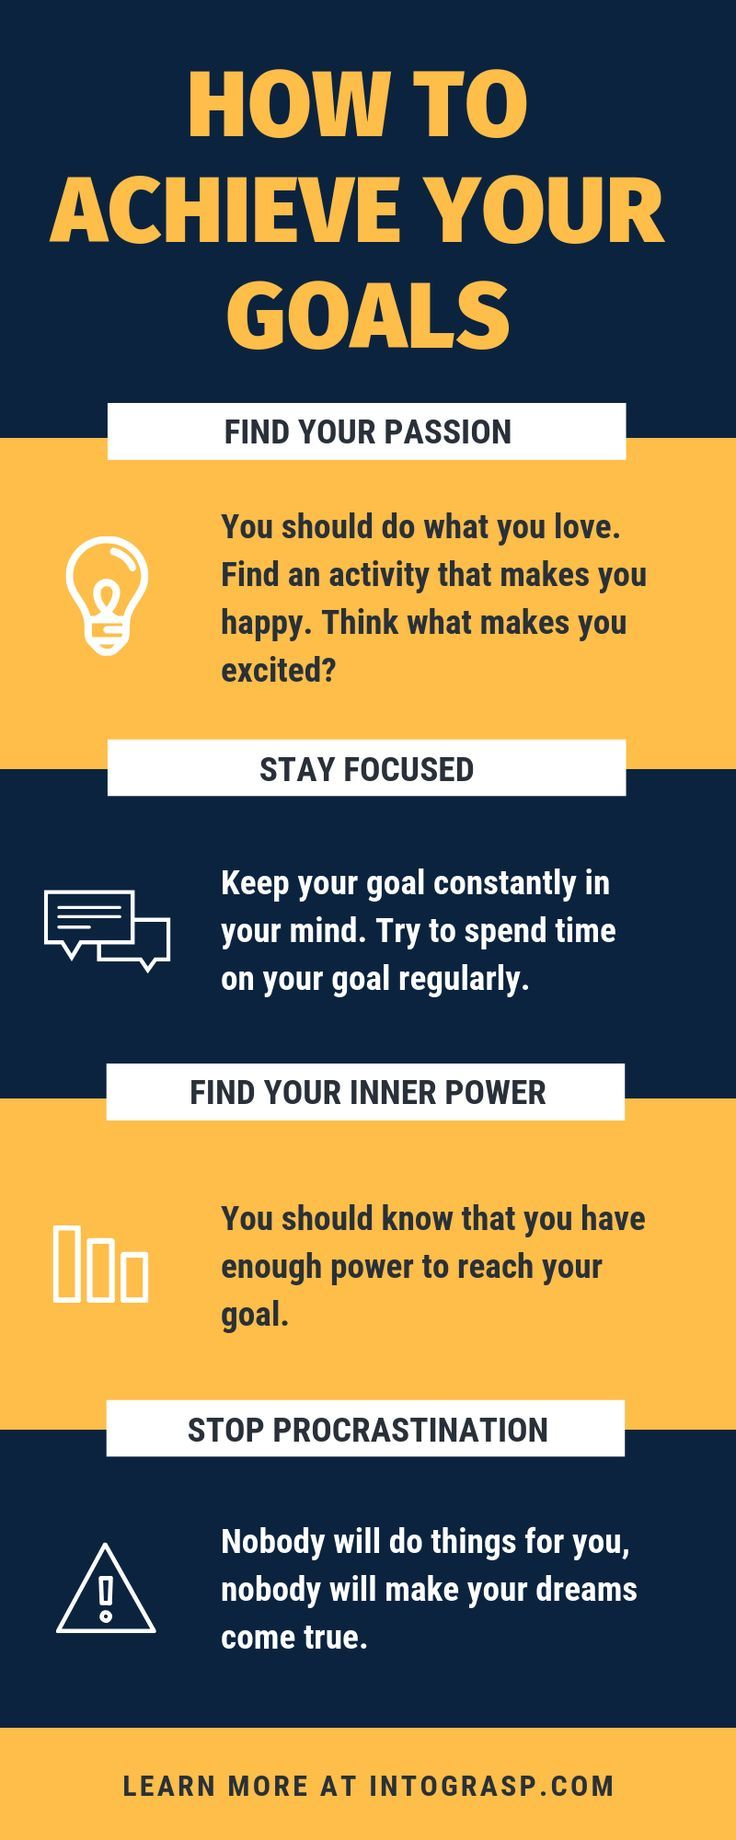 How to Achieve Your Goals Faster! #inspiringpeople